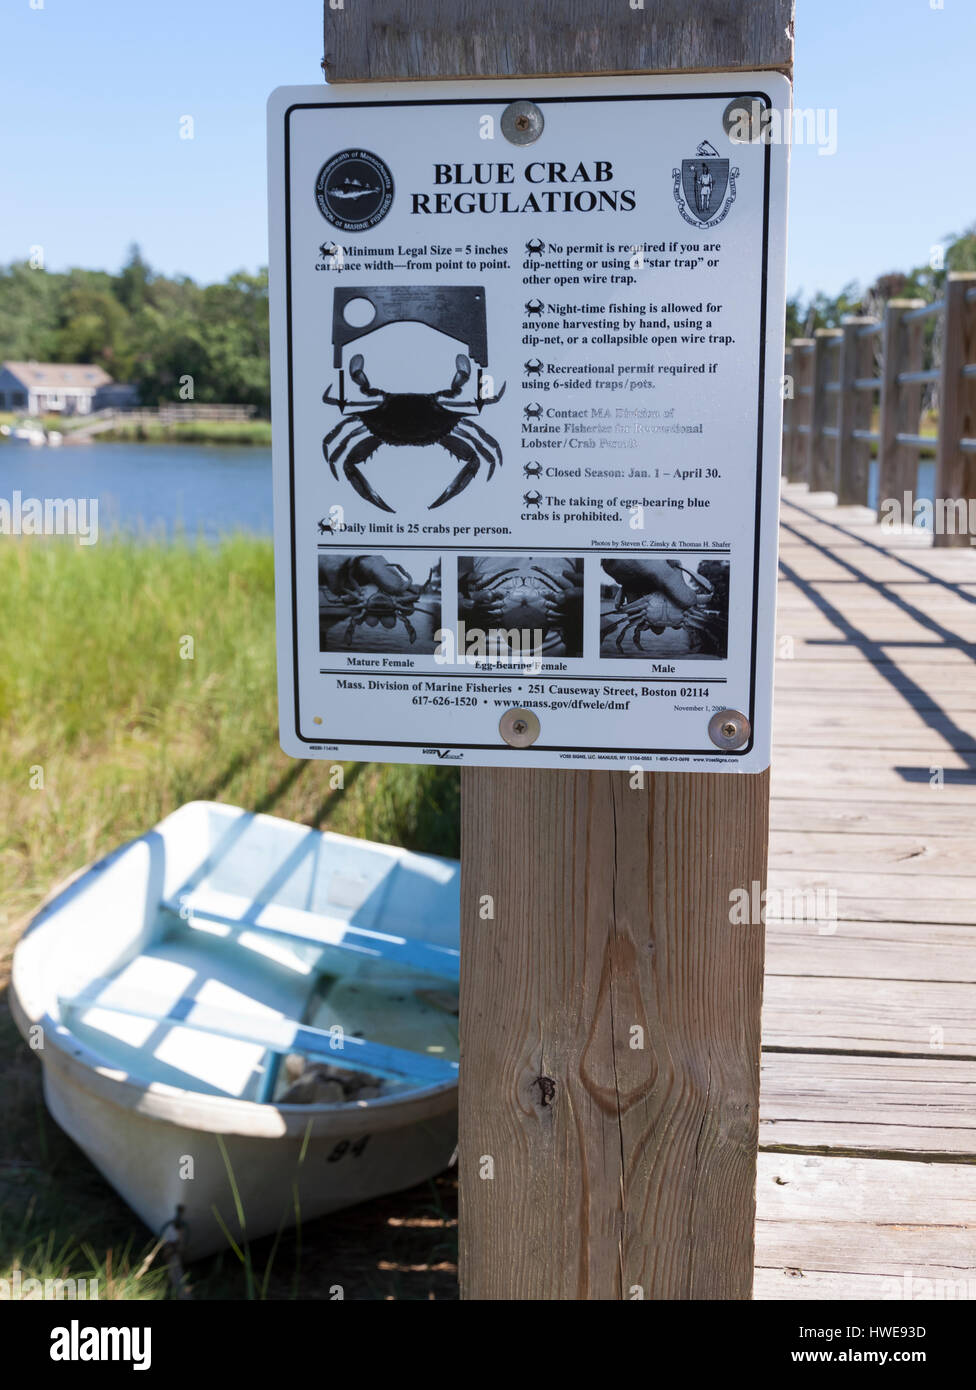 Blue crab regulation sign posted in Orleans, Massachusetts on Cape Cod. - Stock Image